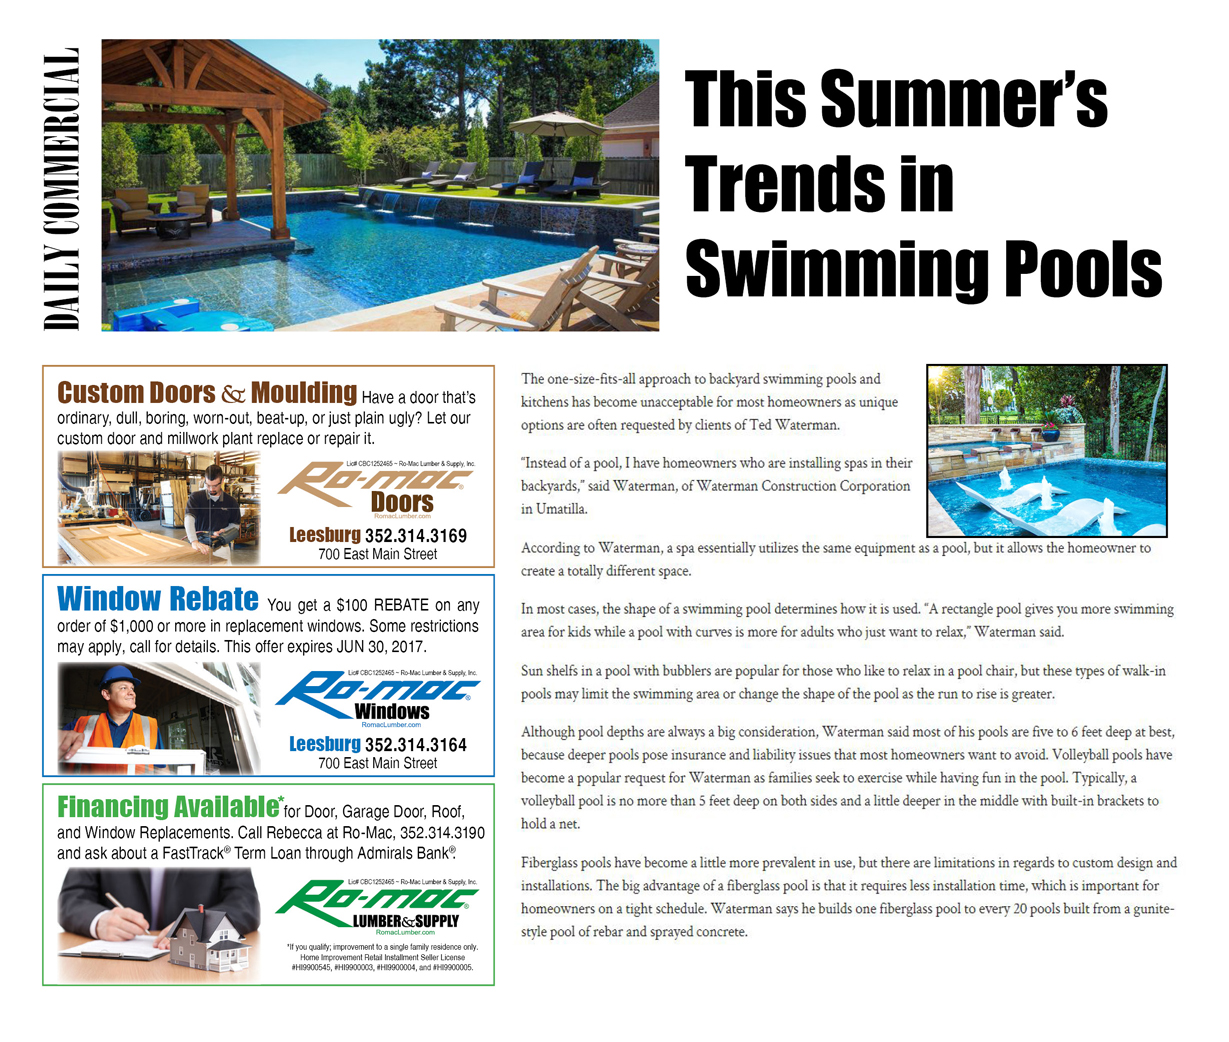 17-07-22 SwimPoolTrends